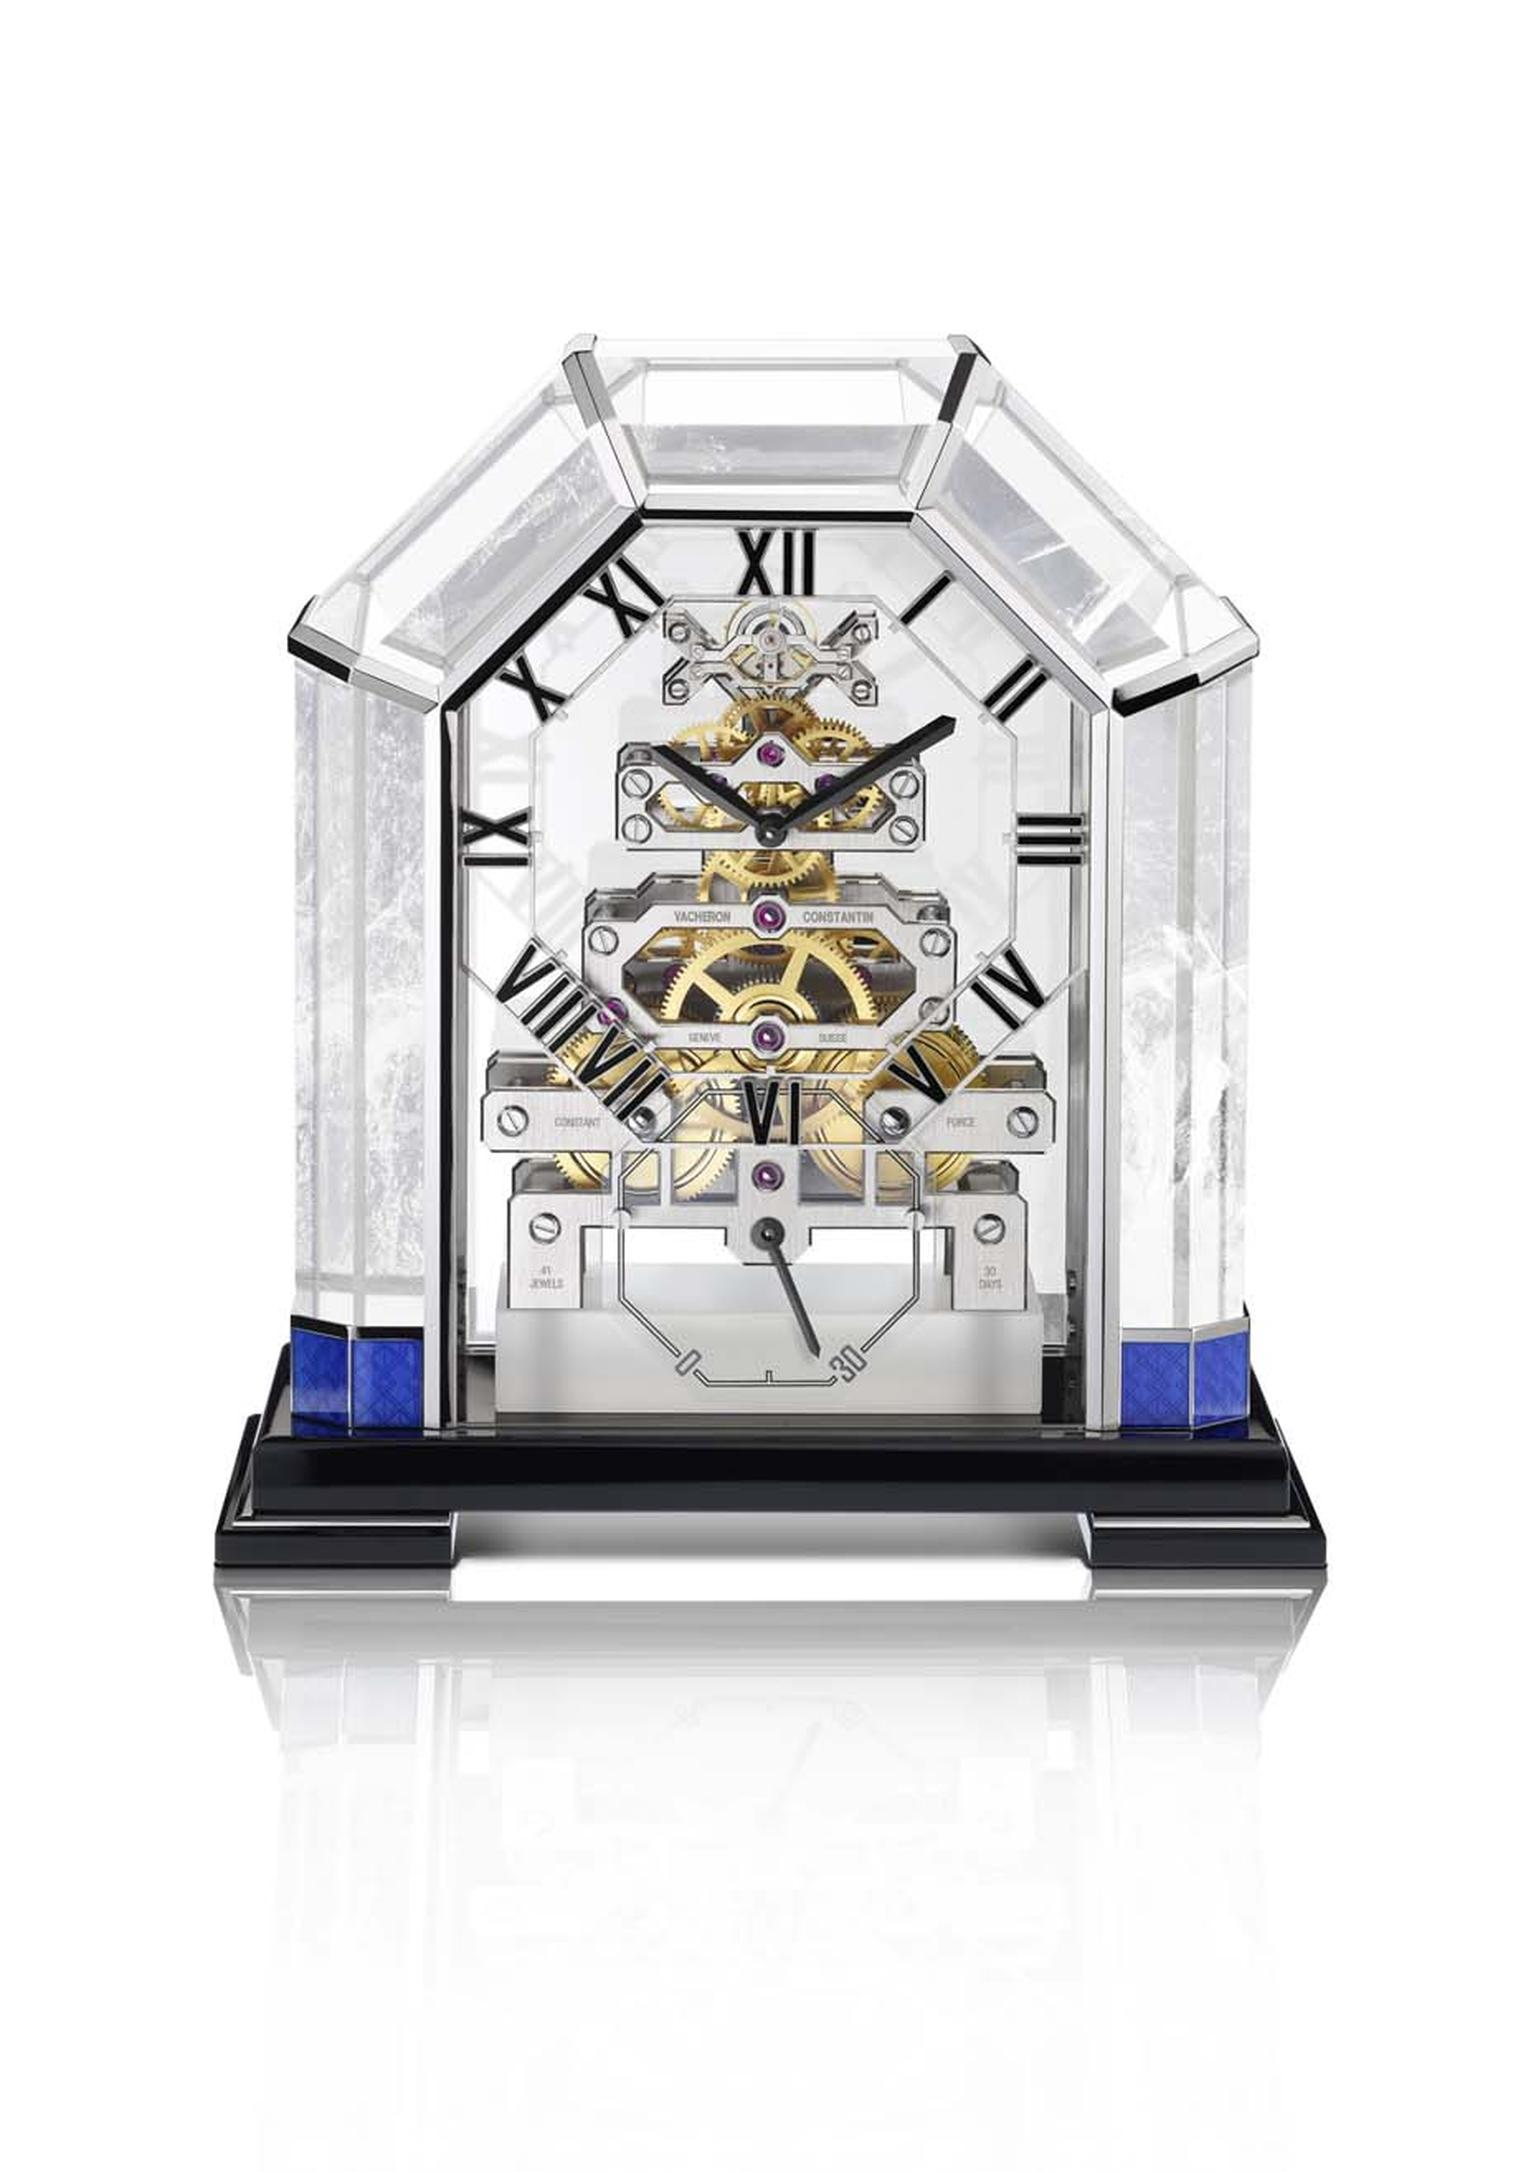 the Arca, a unique and beautifully crafted clock made from rock crystal. It offers a clear view of the open-worked, manual-winding calibre 9260. Built around seven hand-bevelled bridges, the exceptional power reserve of 30 days means that the clock will o